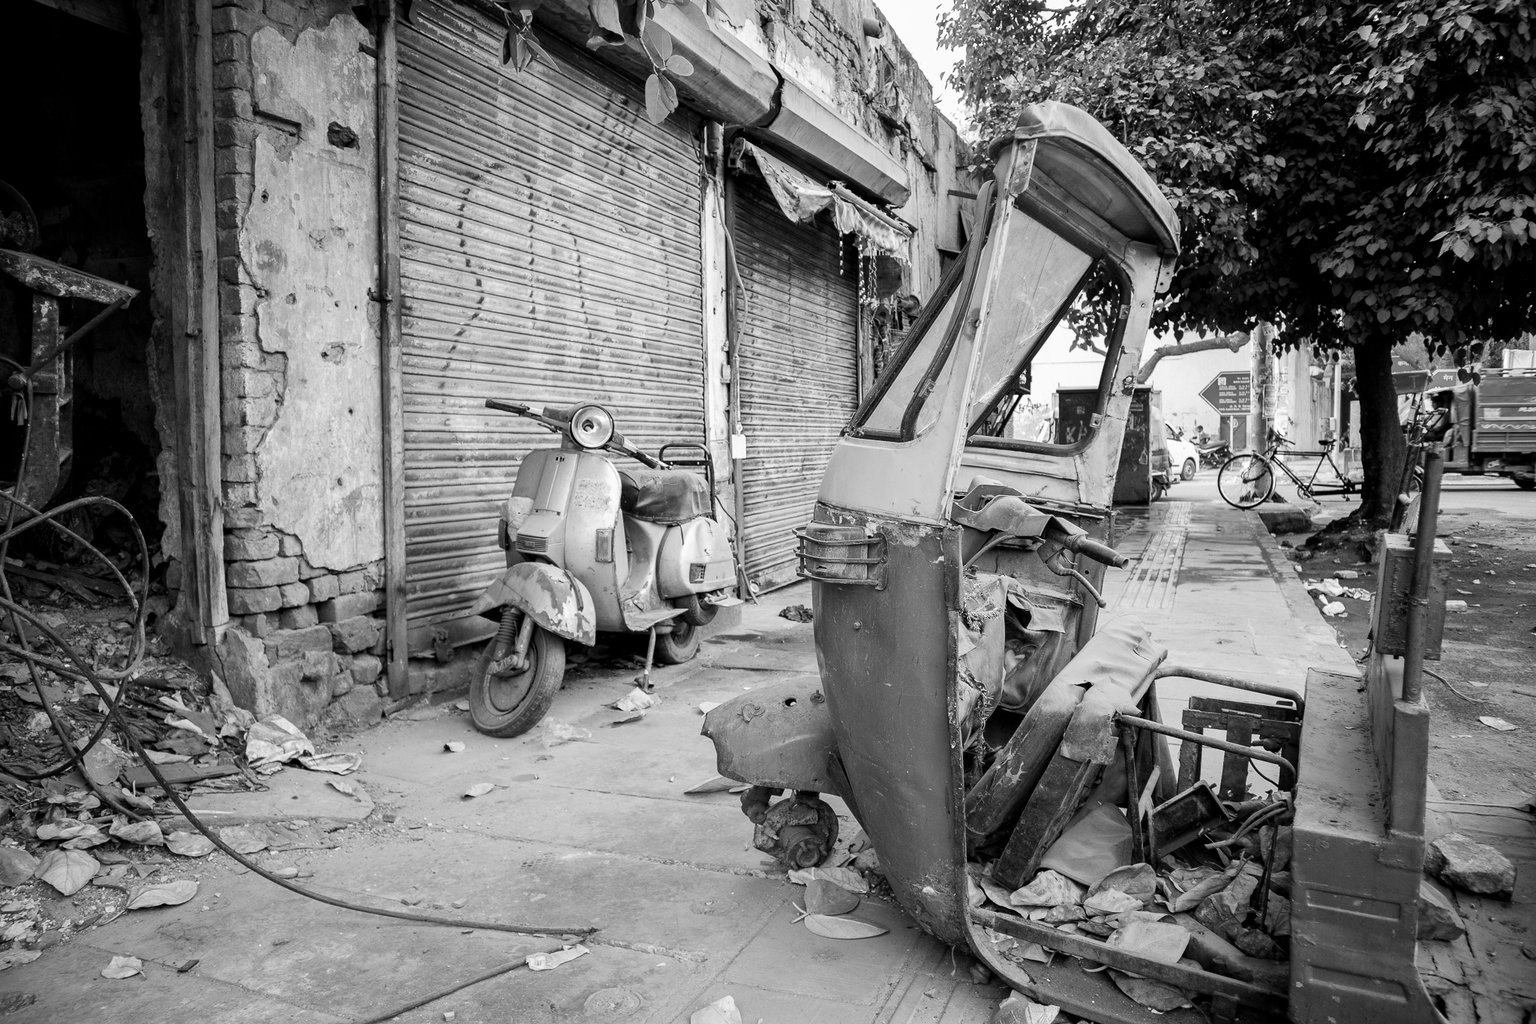 Why bother with the breakers yard, when you can just leave it on the street. (Paharganj)